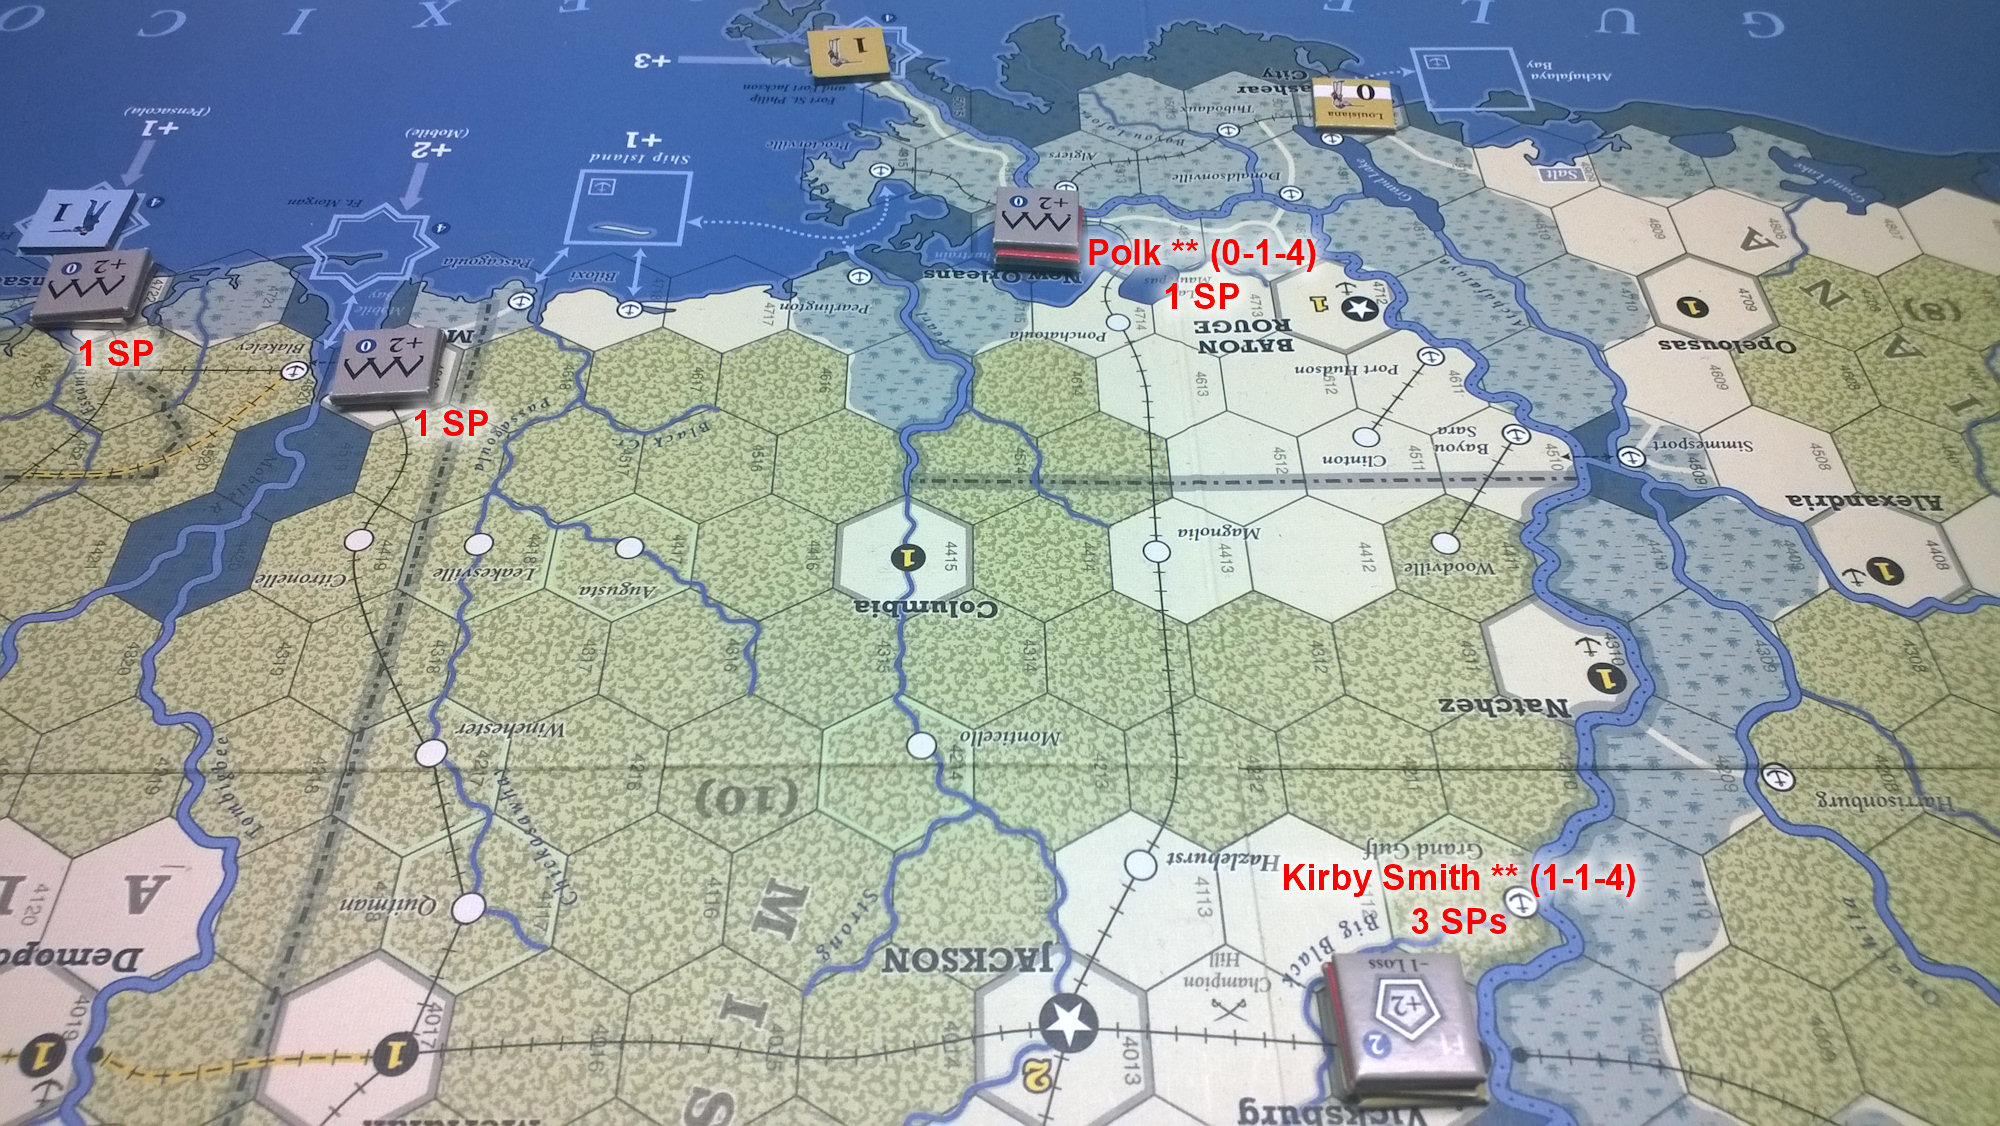 The U.S. Civil War: The Gulf coast states at the end of Game Turn 5